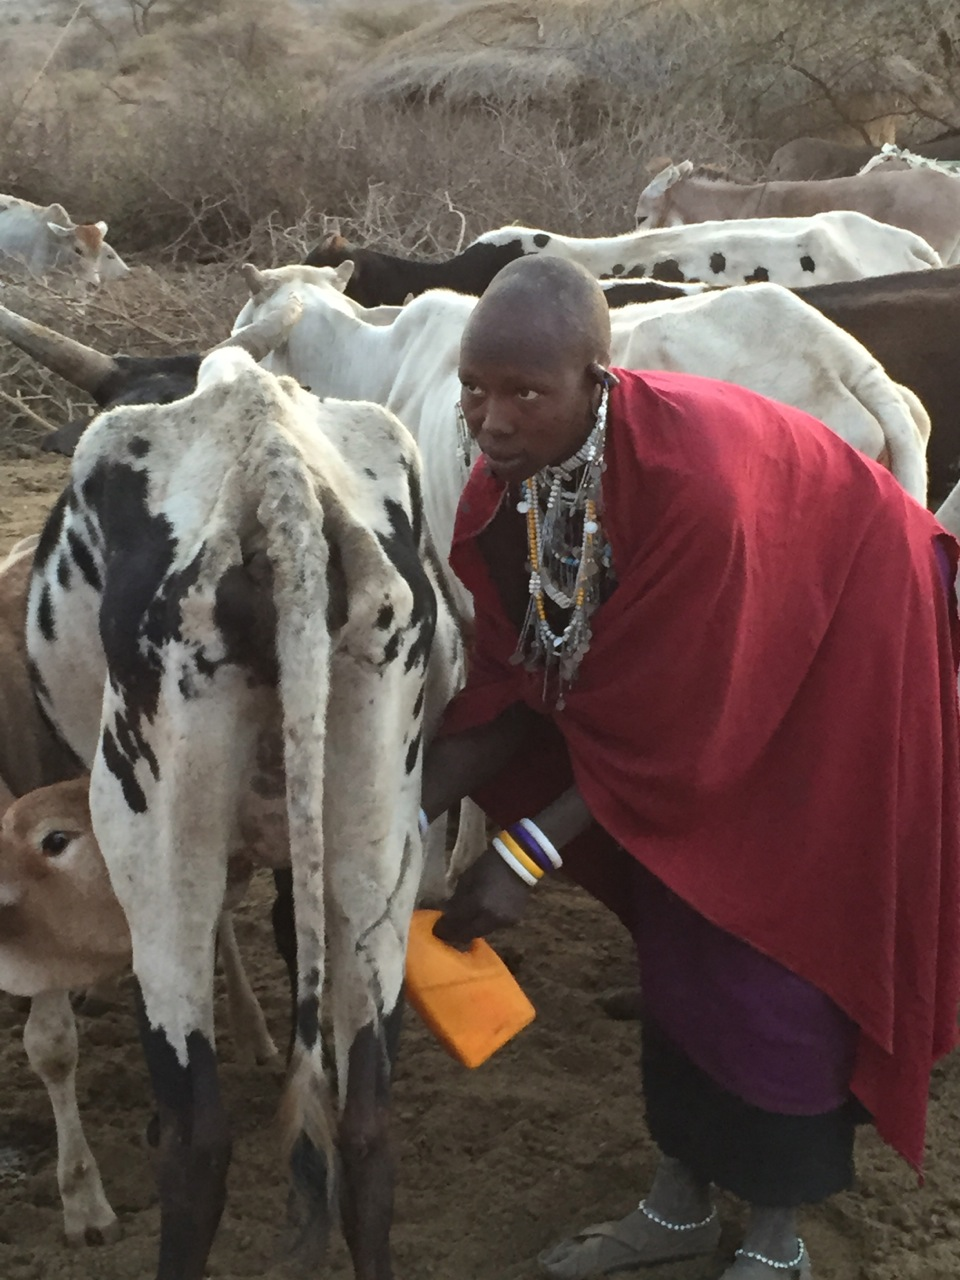 Masai woman milking a cow in her village in the foothills of Mt. Kilimanjaro.